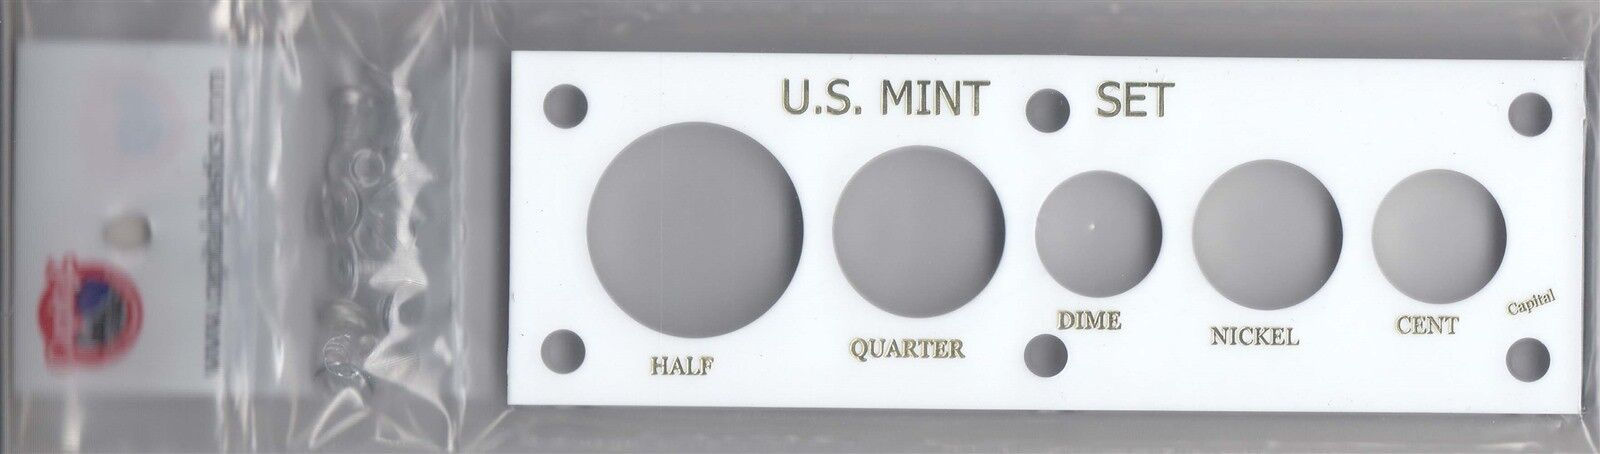 Capital Holder 2x6 US Mint Set Cent Through Half White Plastic Display Case NEW